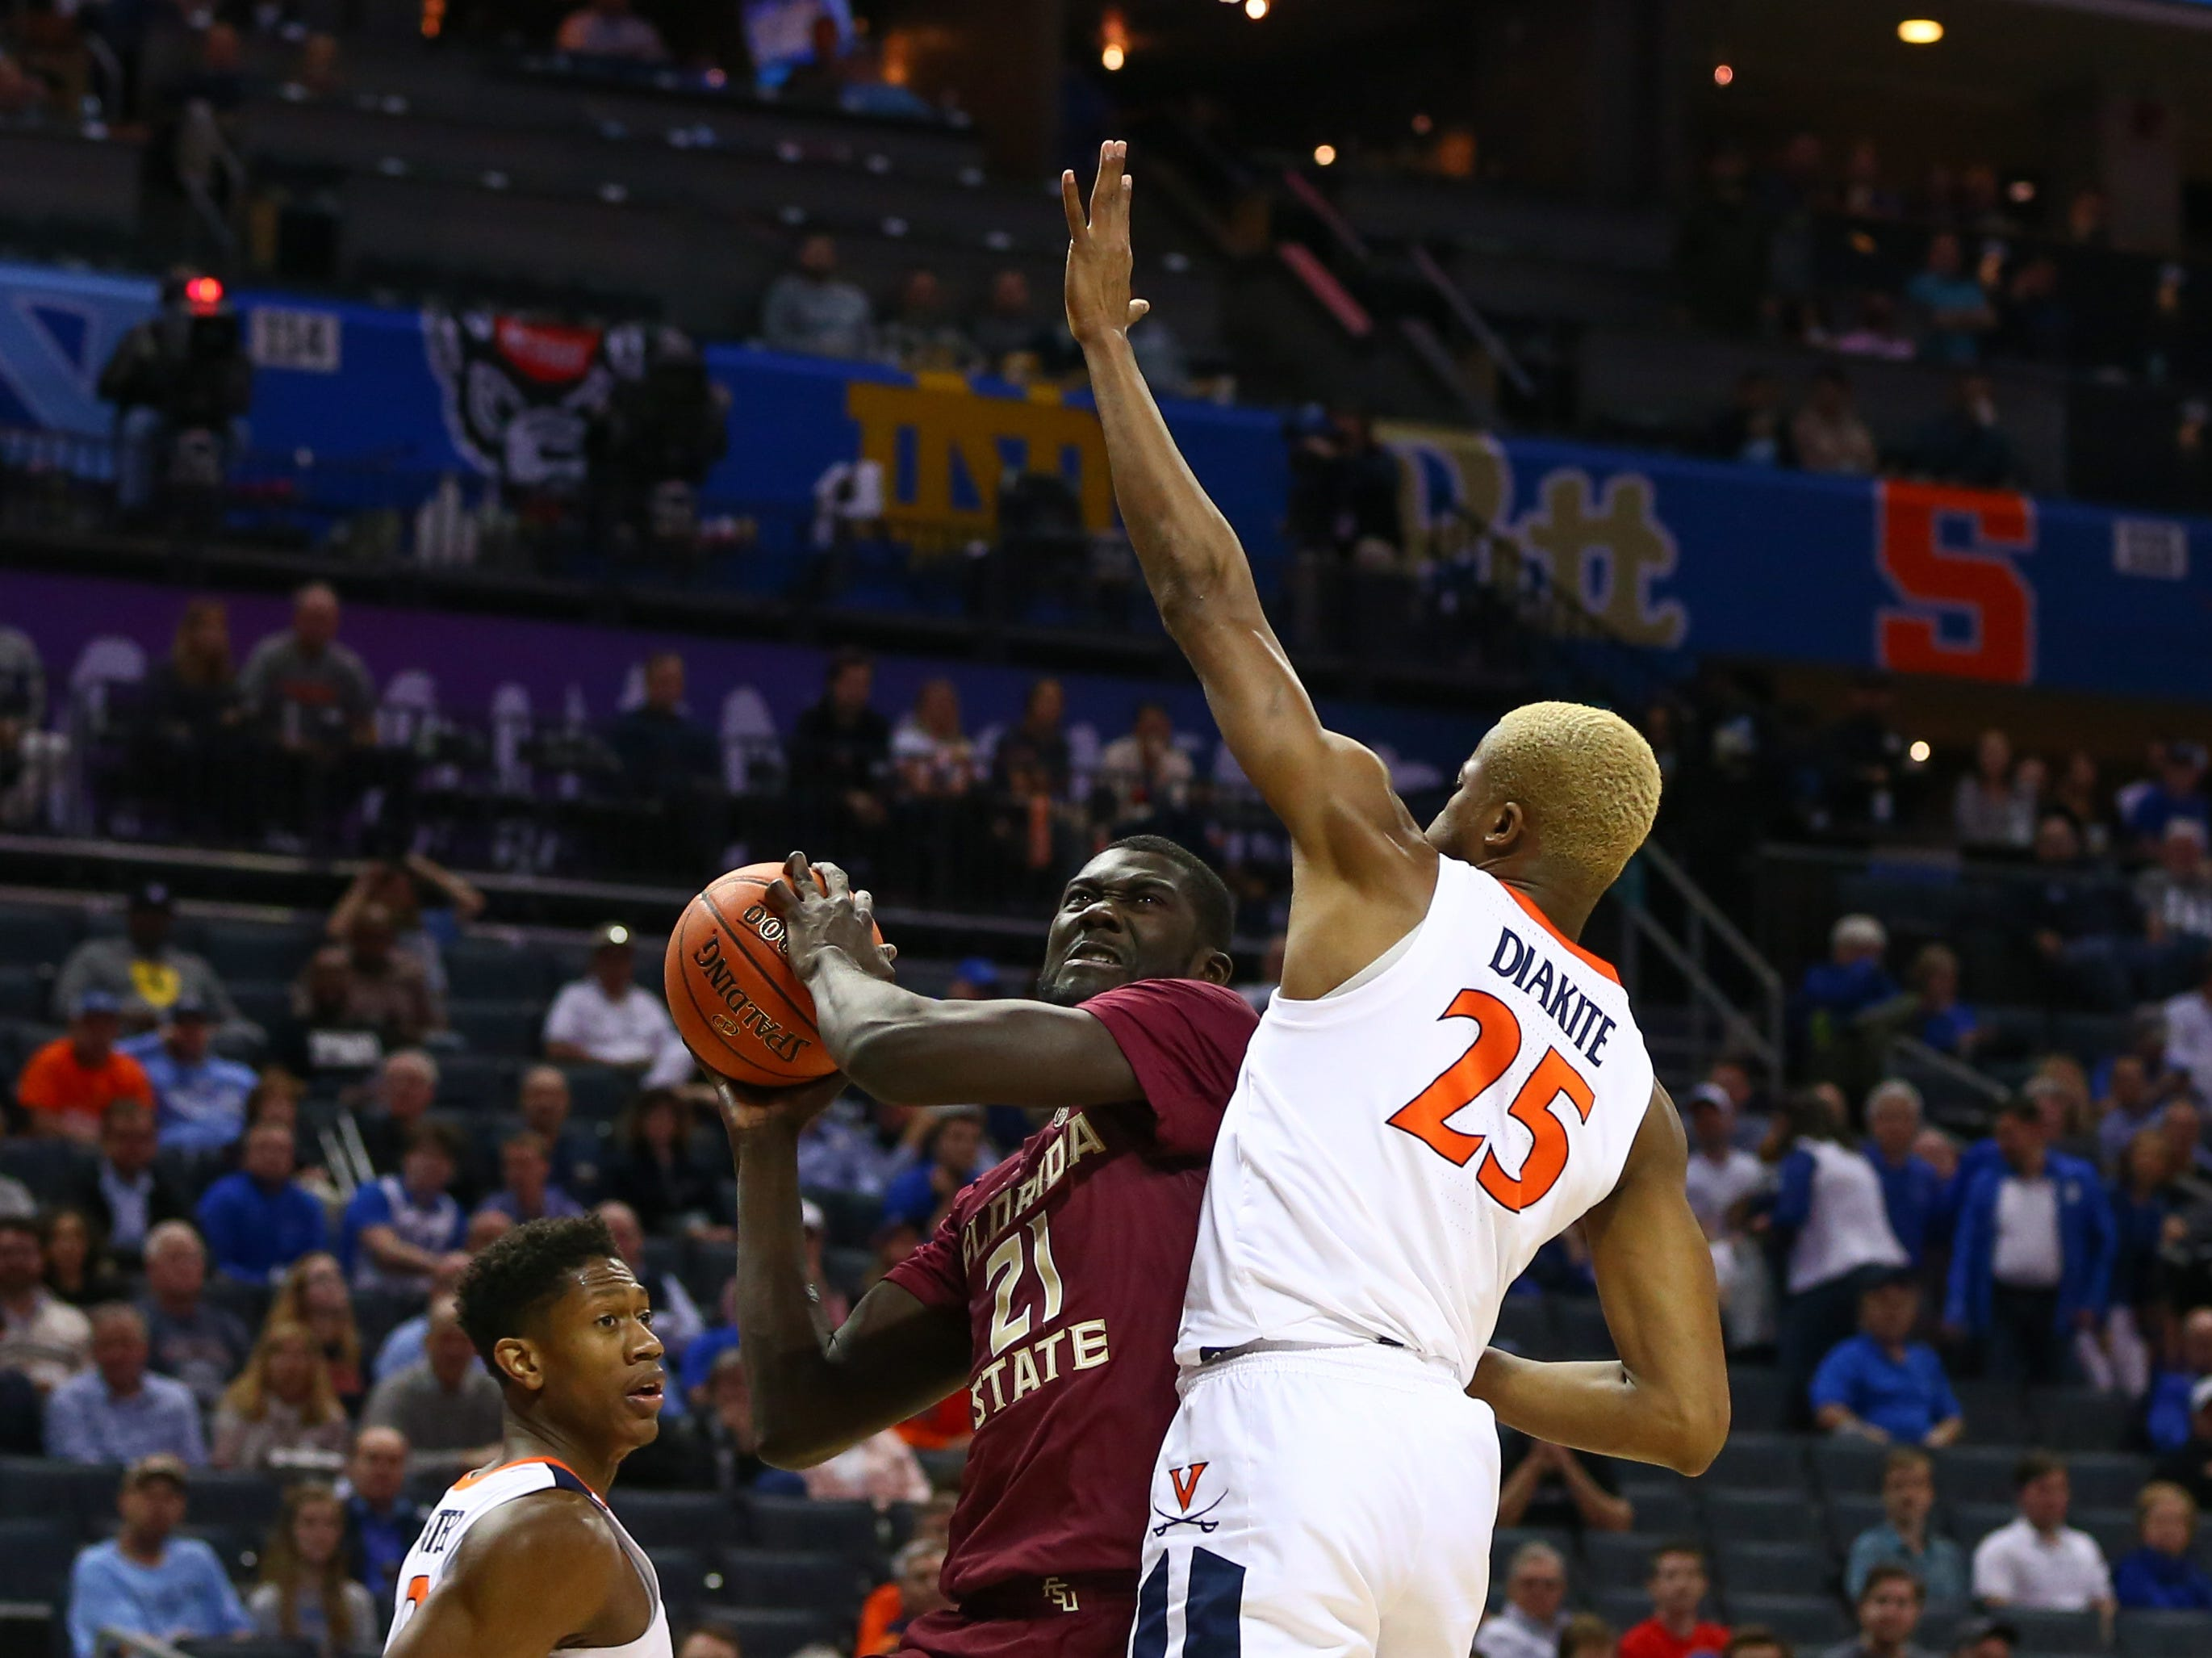 Mar 15, 2019; Charlotte, NC, USA; Florida State Seminoles center Christ Koumadje (21) shoots the ball against Virginia Cavaliers forward Mamadi Diakite (25) in the first half in the ACC conference tournament at Spectrum Center. Mandatory Credit: Jeremy Brevard-USA TODAY Sports